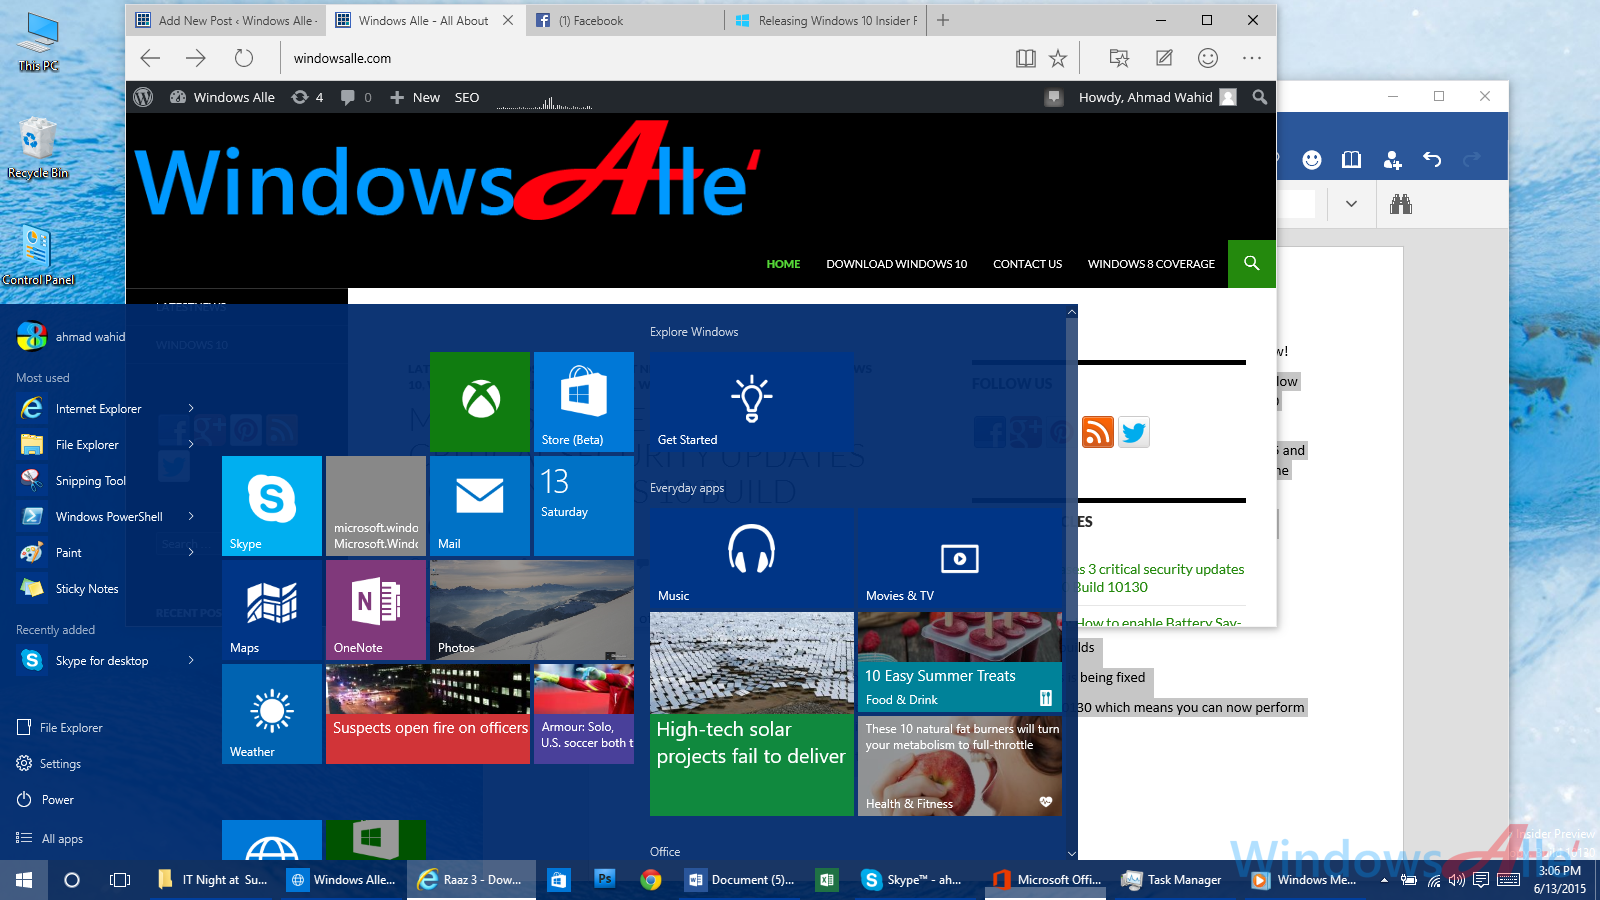 Microsoft launches the Windows 10 Insider Preview build